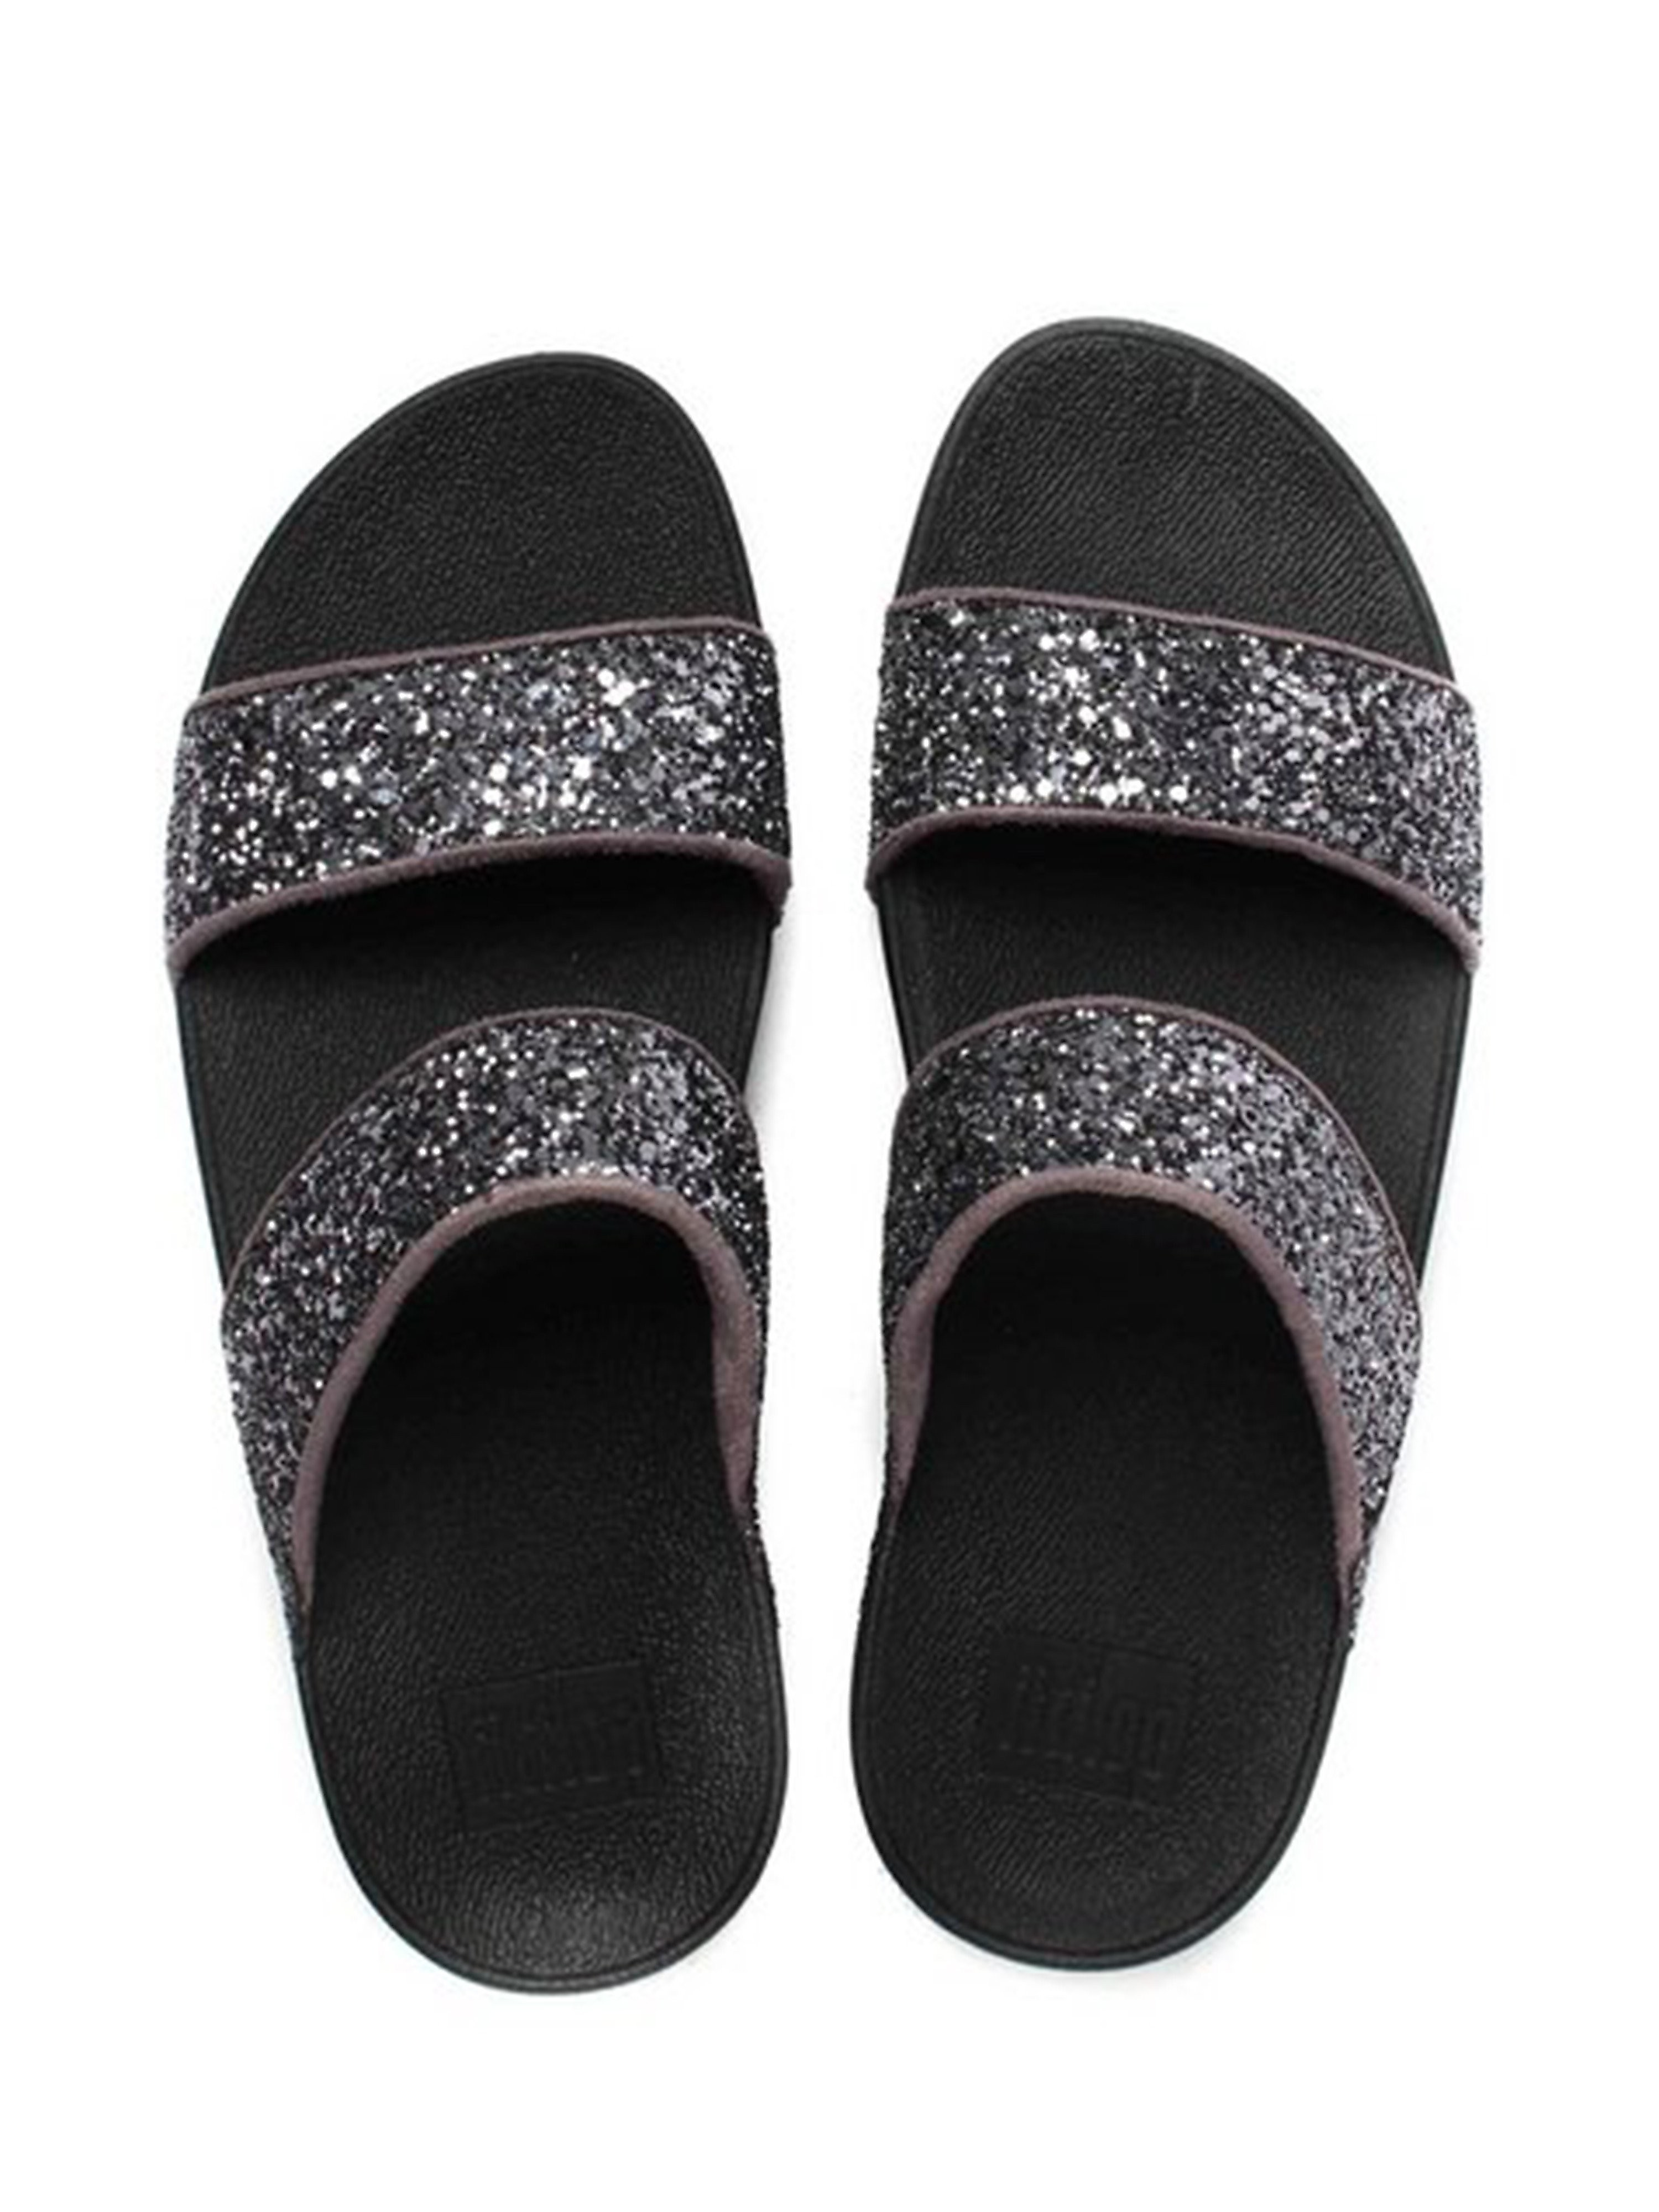 FitFlop Women's Glitterball Slide Sandals - Pewter